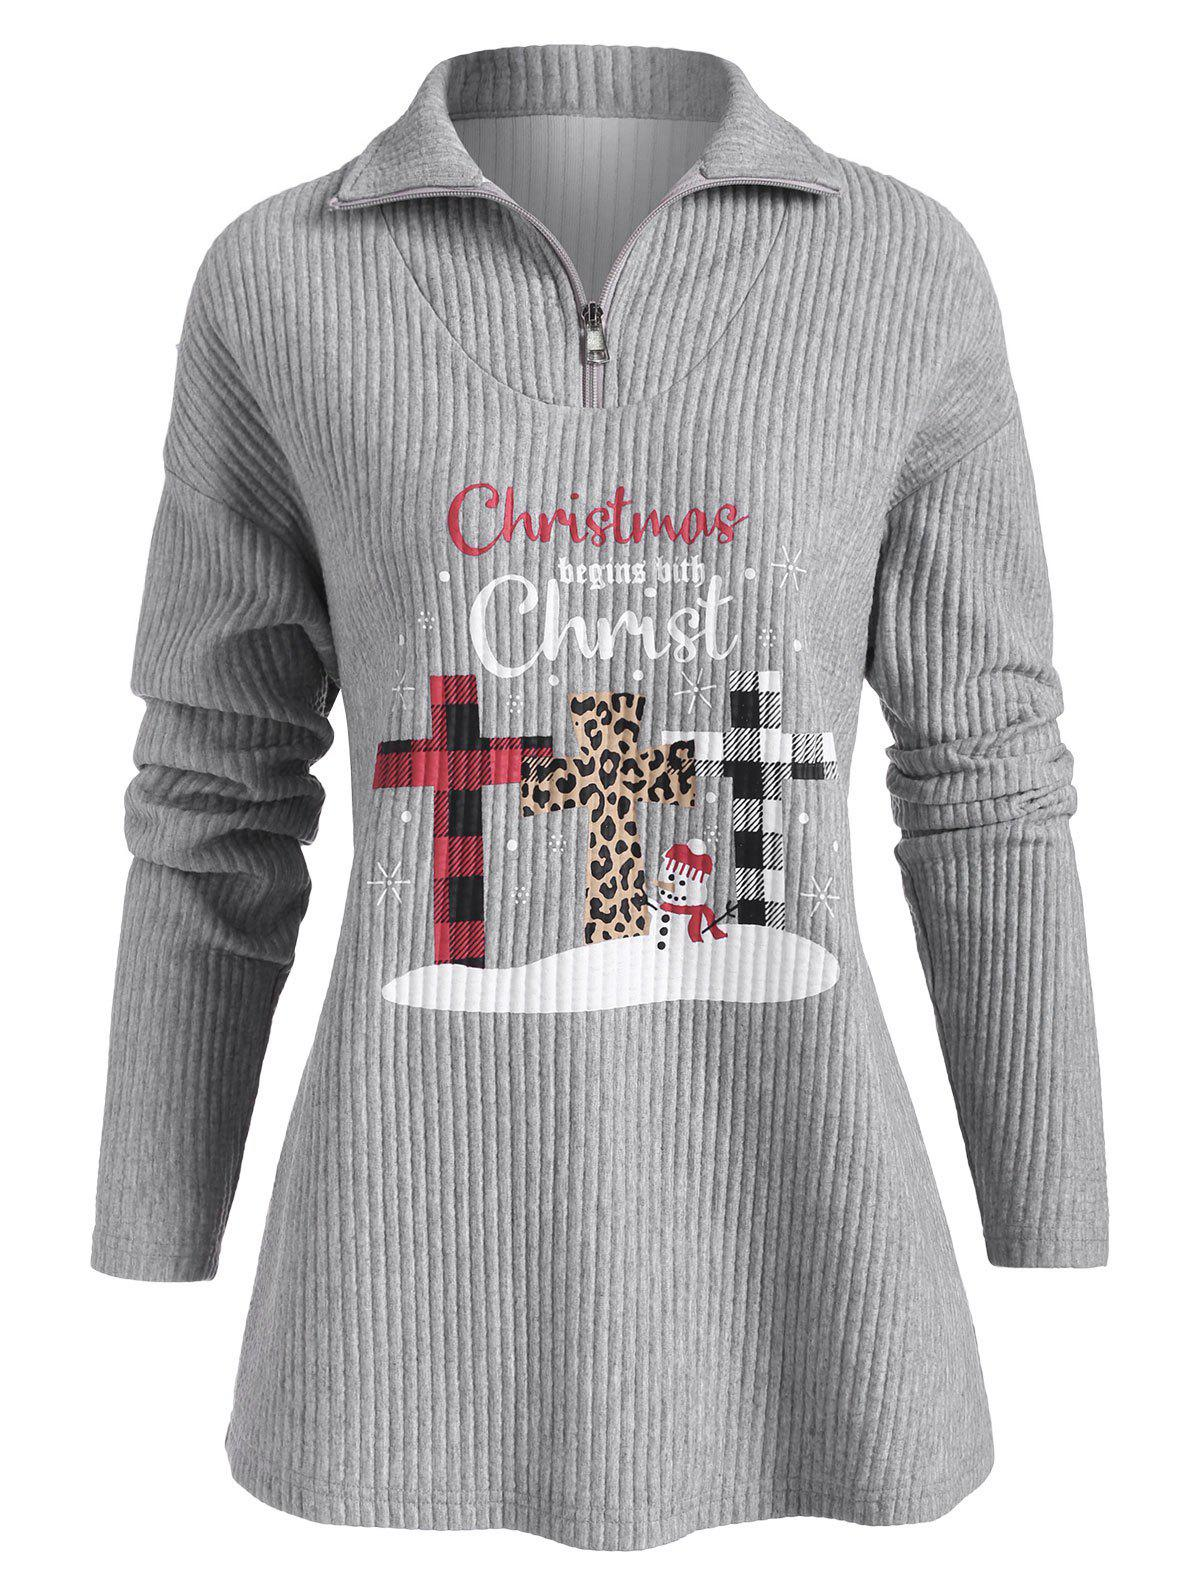 Affordable Chirstmas Snowman Christ Graphic Zip Front Sweatshirt